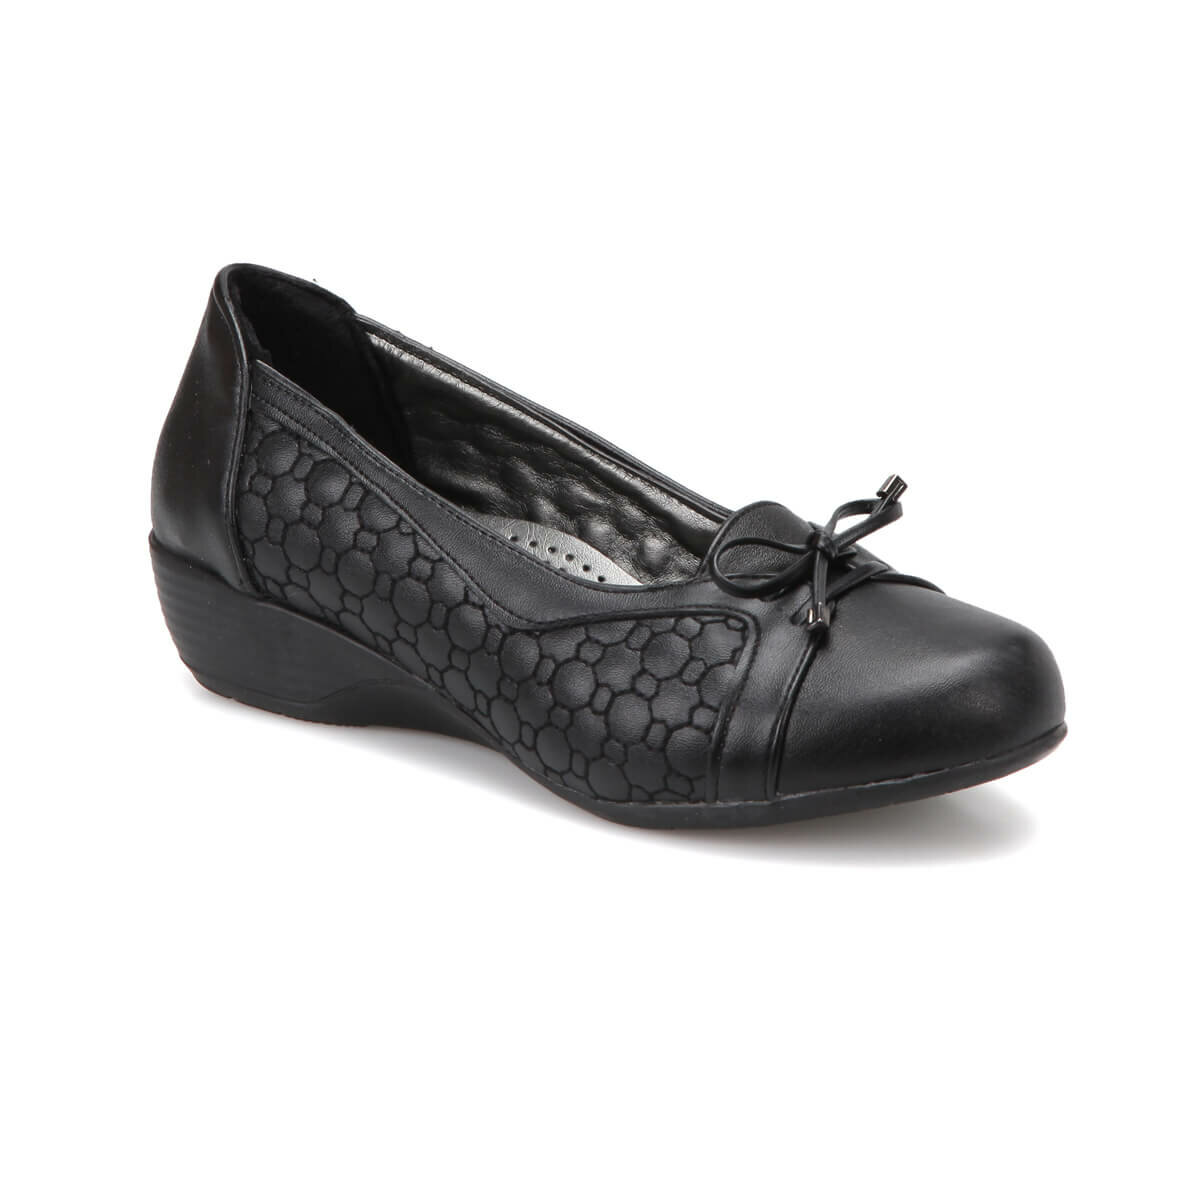 FLO 72. 158026.Z Black Women Comfort Shoes Polaris